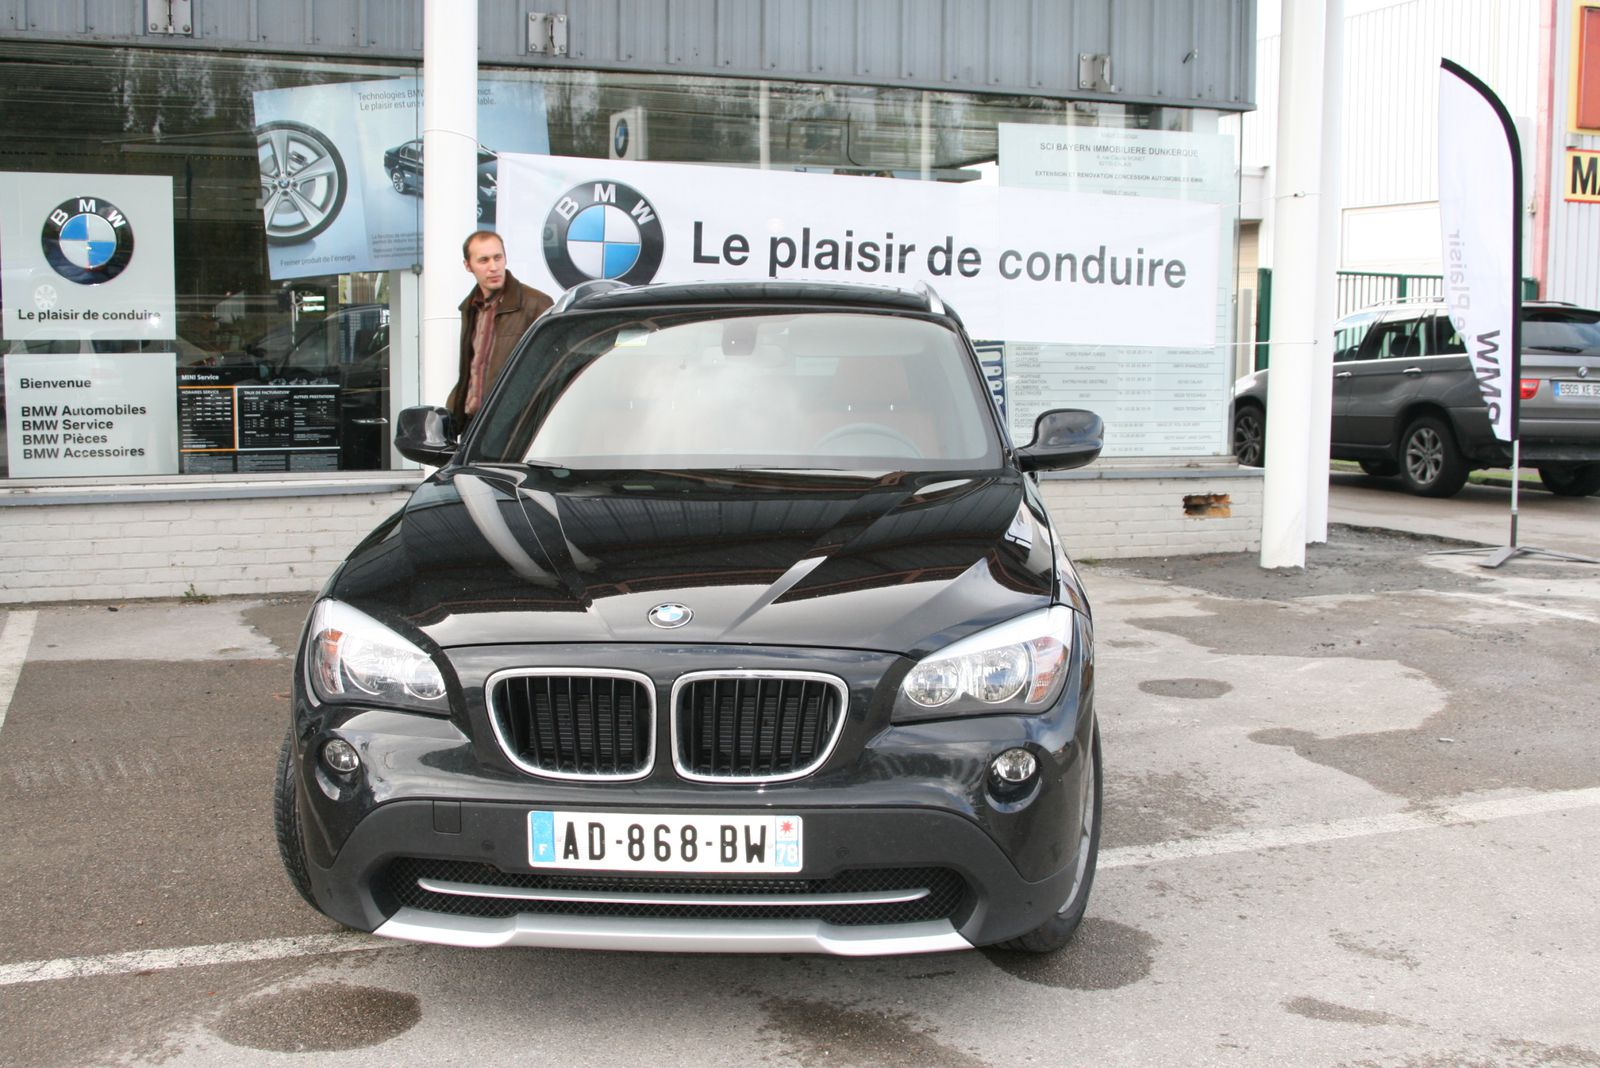 essai du bmw x1 xdrive20d glandouillage. Black Bedroom Furniture Sets. Home Design Ideas